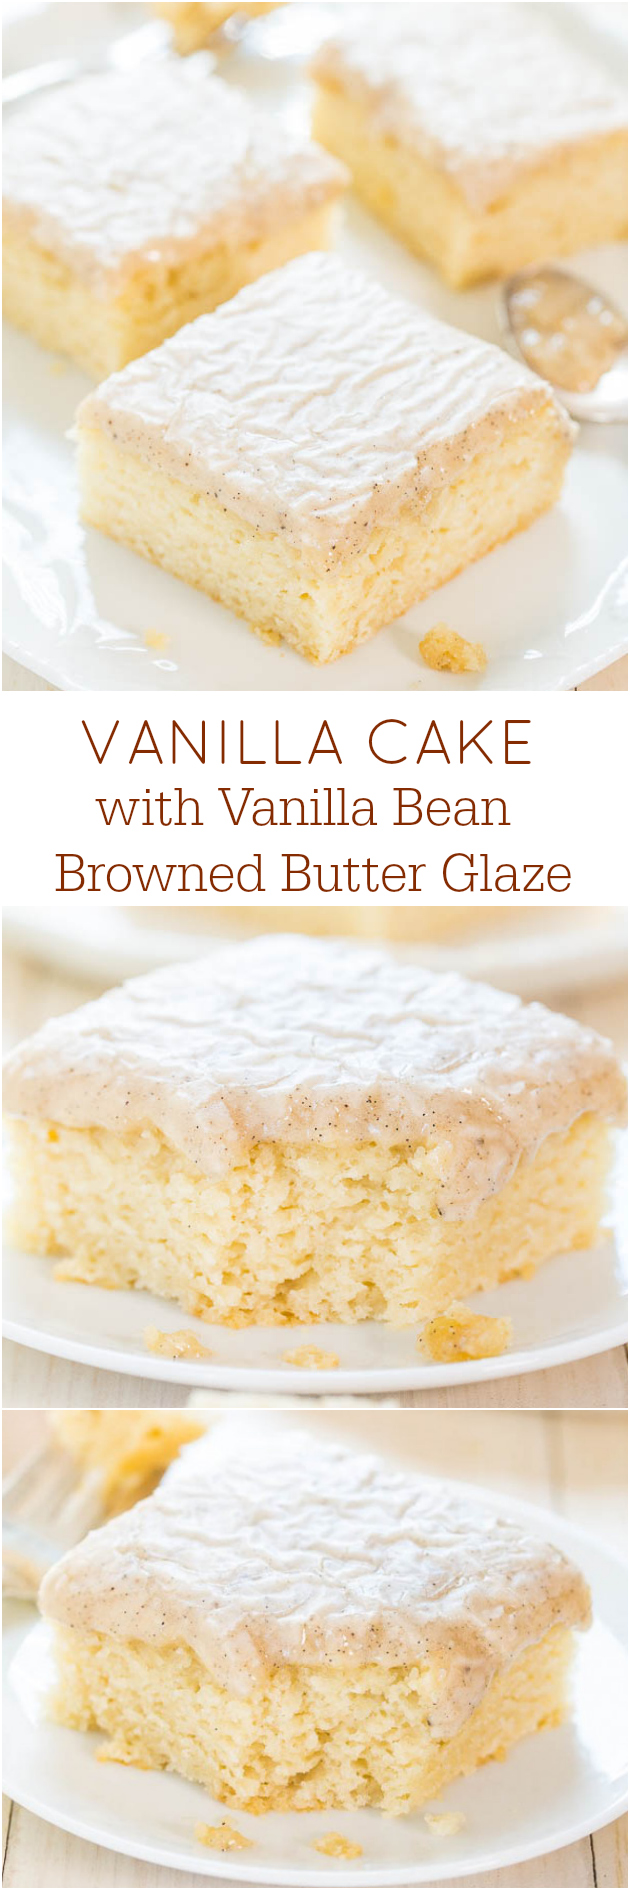 Vanilla cake from scratch: move over the chocolate, because the vanilla has arrived. This easy, mixer-less vanilla cake is topped with a golden butter frosting that's impossible to resist!